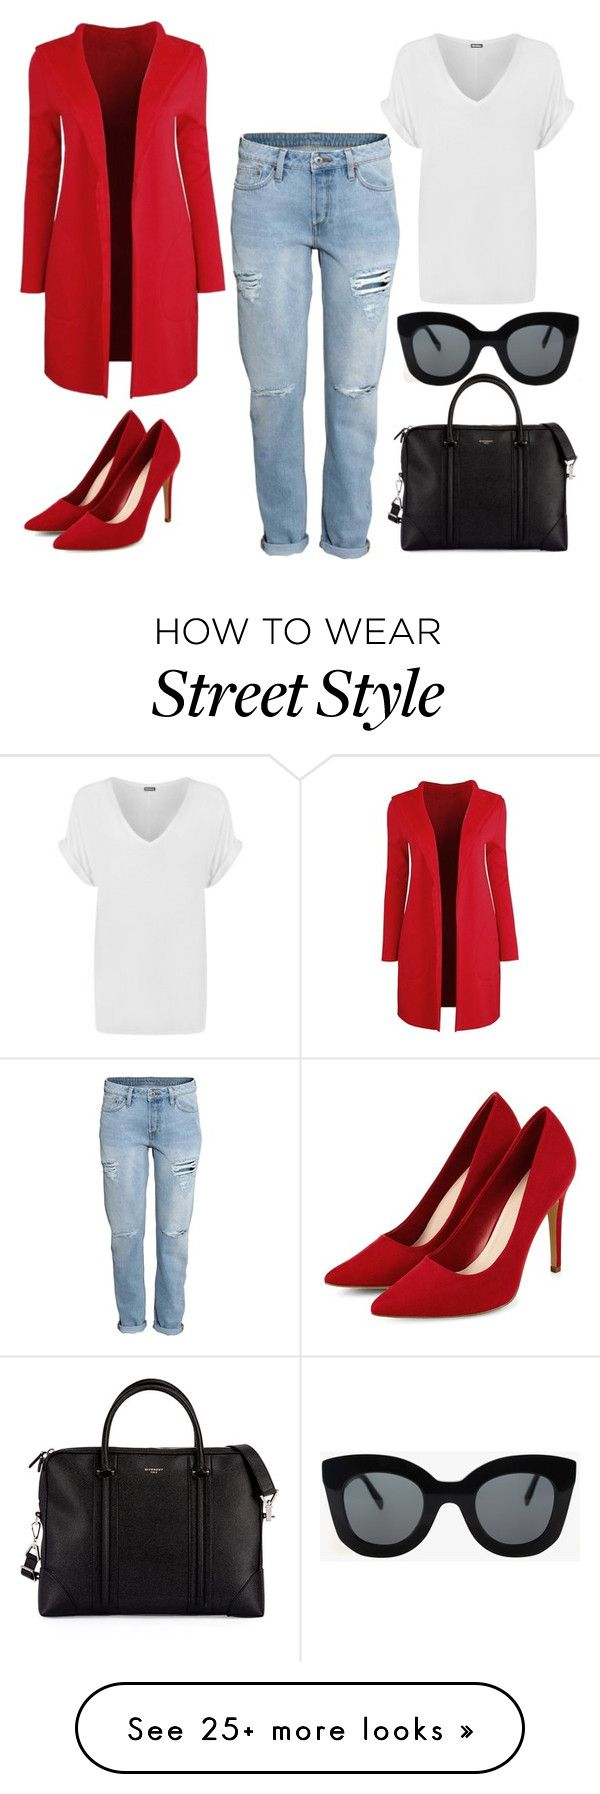 """""""Street style"""" by adancetovic on Polyvore featuring WearAll, CÉLINE, Givenchy, women's clothing, women, female, woman, misses and juniors"""